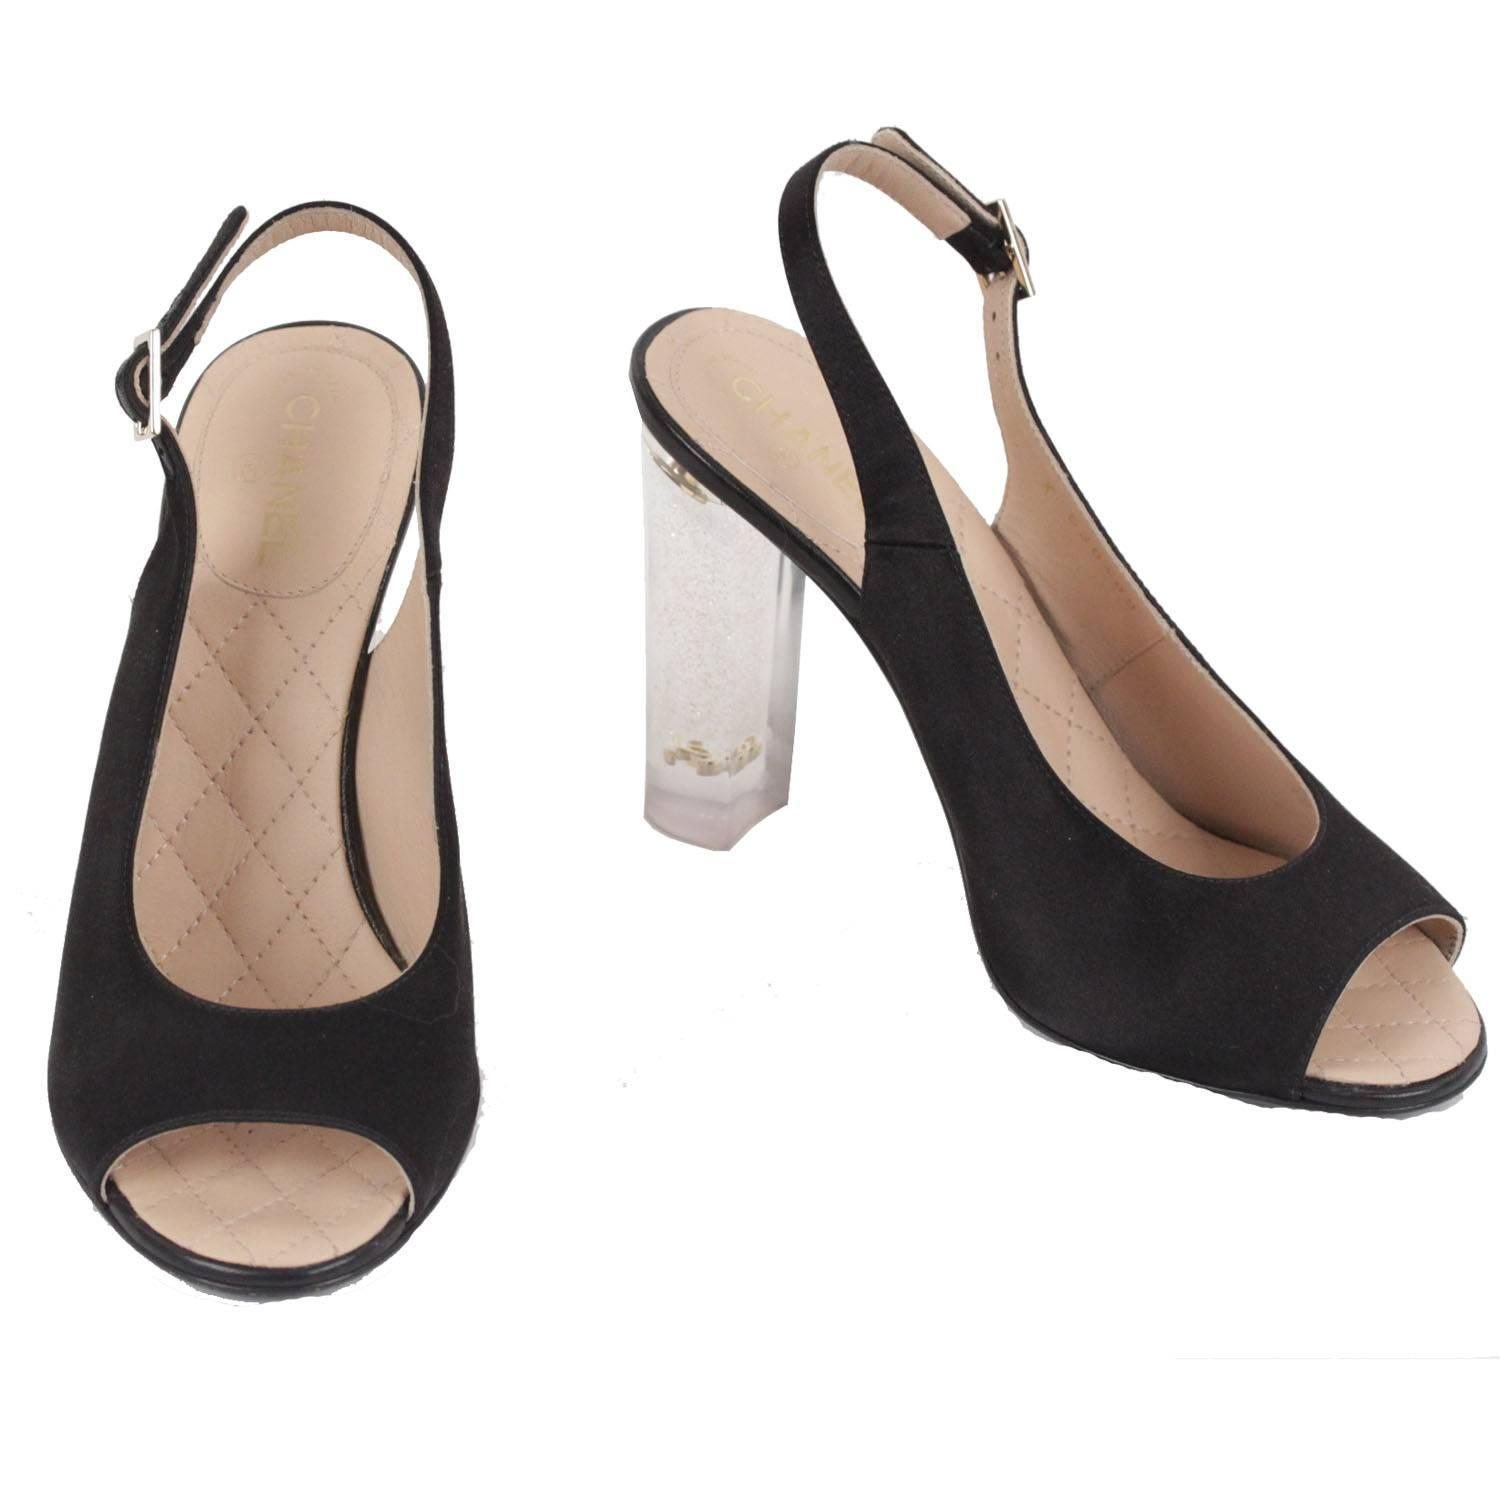 e2d79fd8c52 CHANEL Black Satin LUCITE HEEL Gold Glitter SLINGBACK Open Toe PUMPS 36.5 C  For Sale at 1stdibs